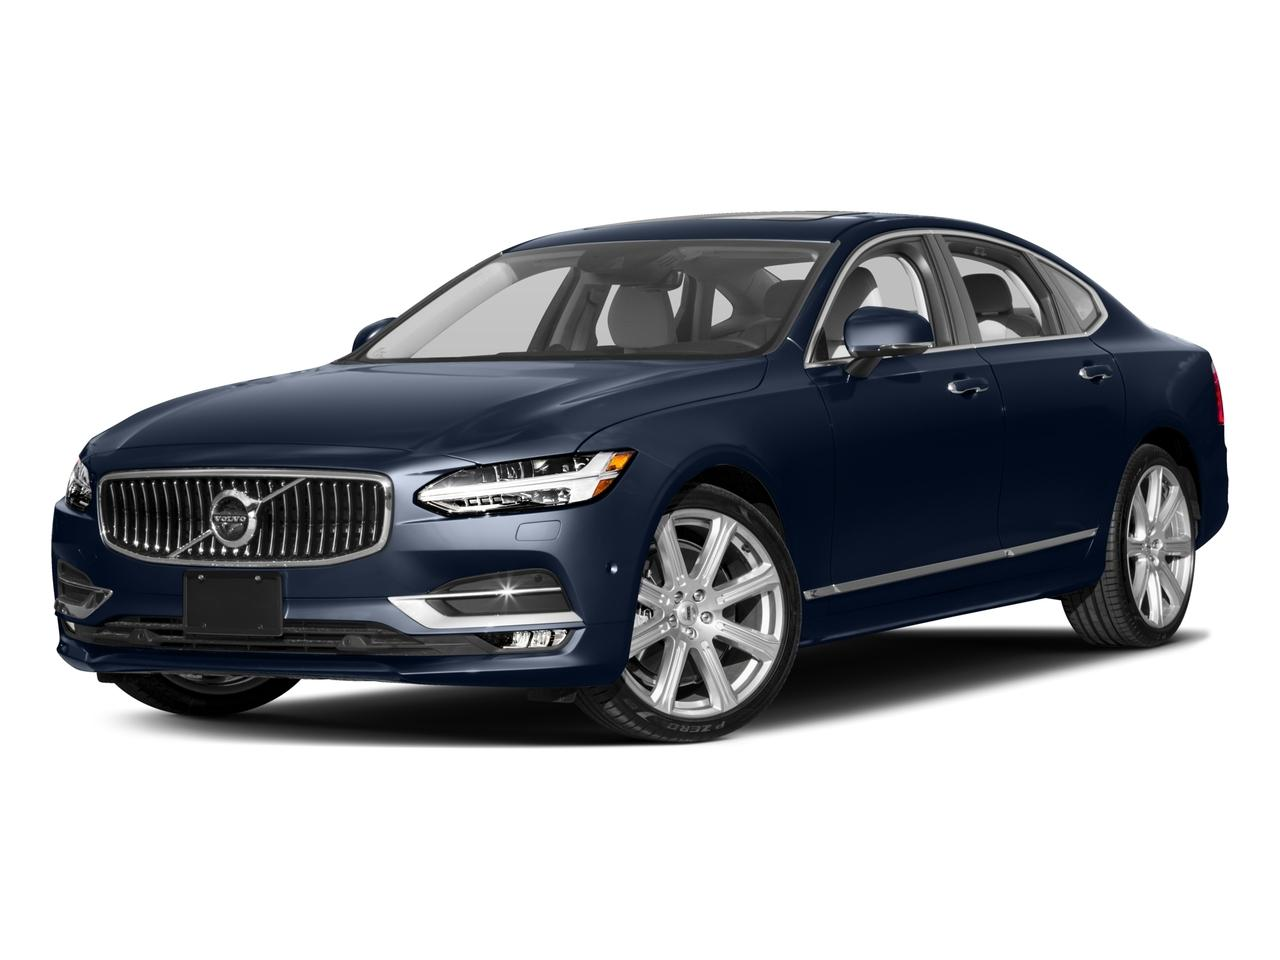 2017 Volvo S90 Vehicle Photo in Grapevine, TX 76051